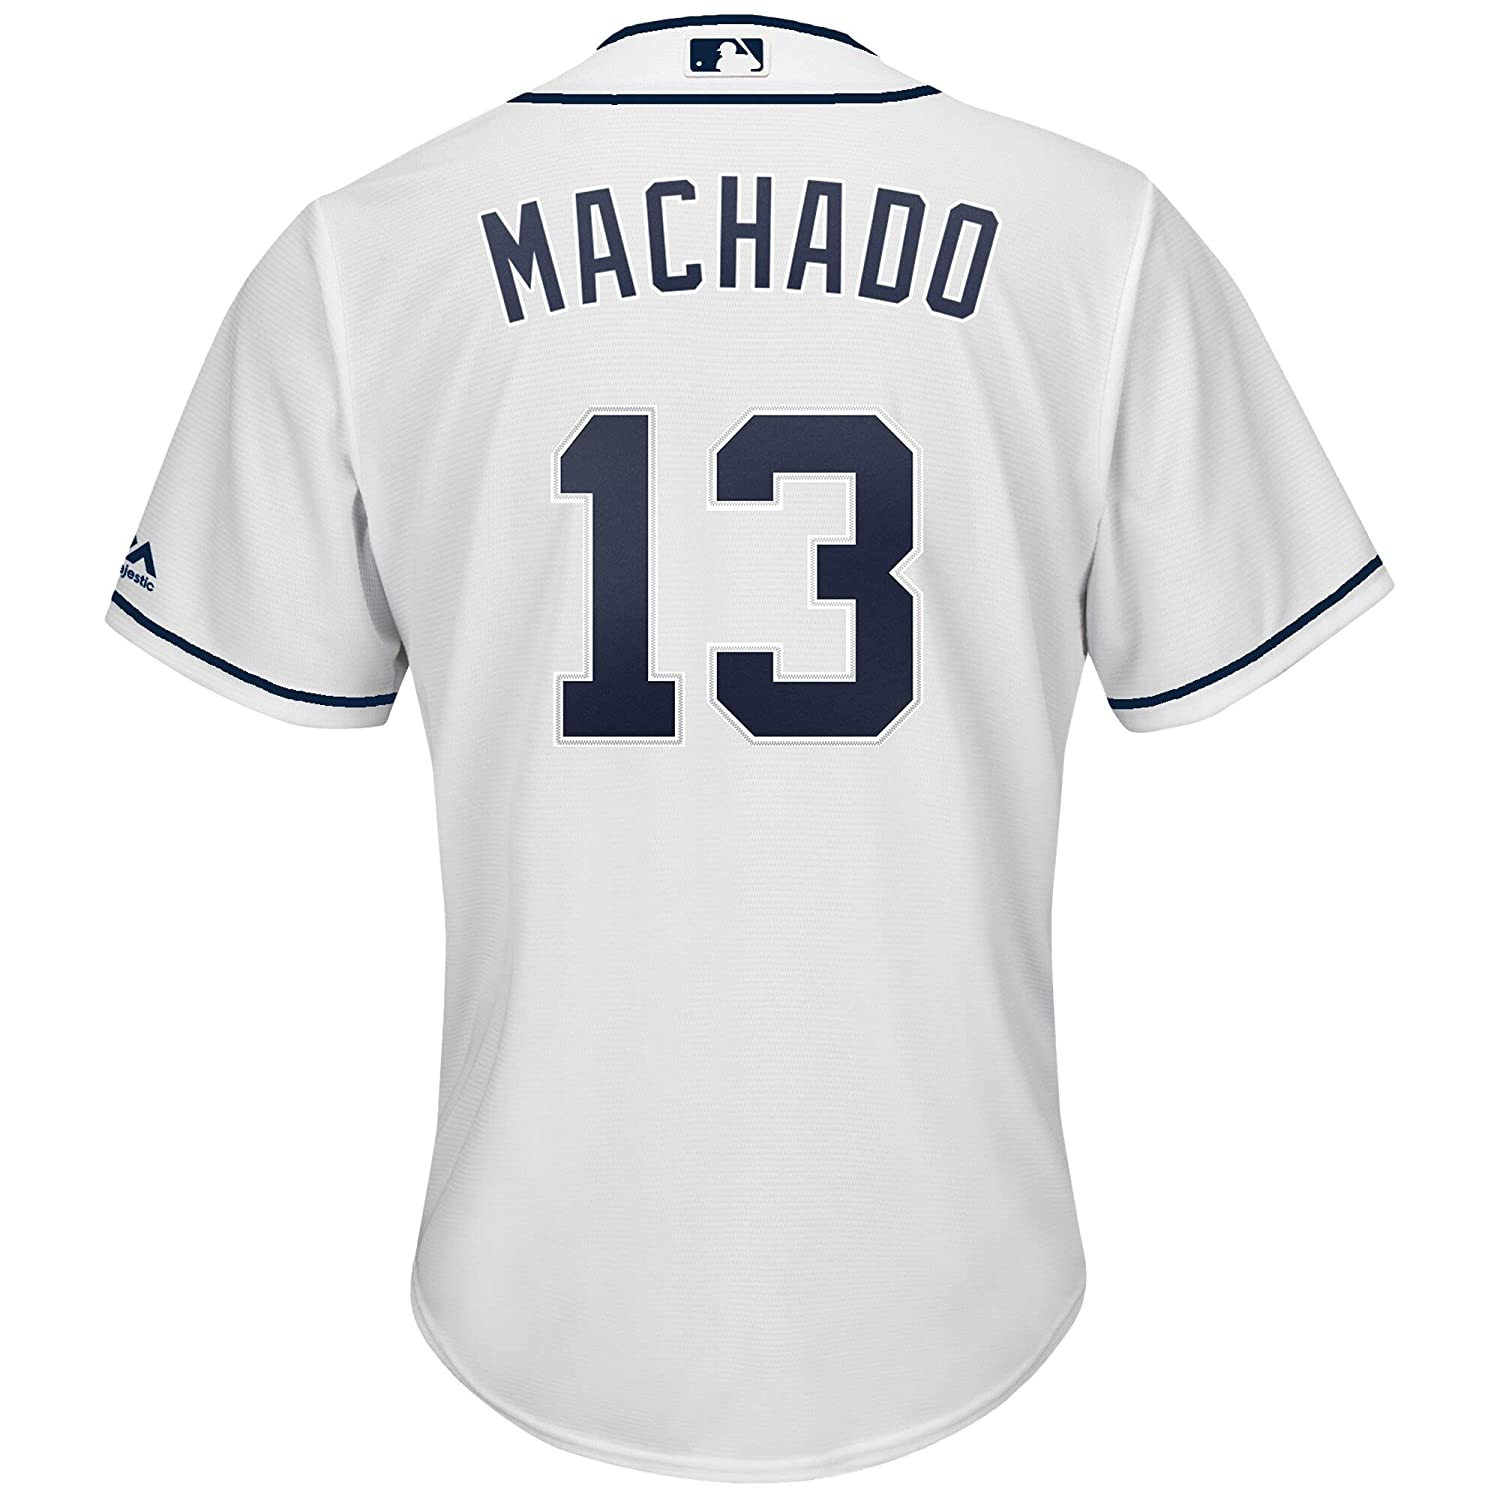 OuterStuff Manny Machado San Diego Padres MLB Majestic Toddler 2-4 White Home Cool Base Replica Jersey